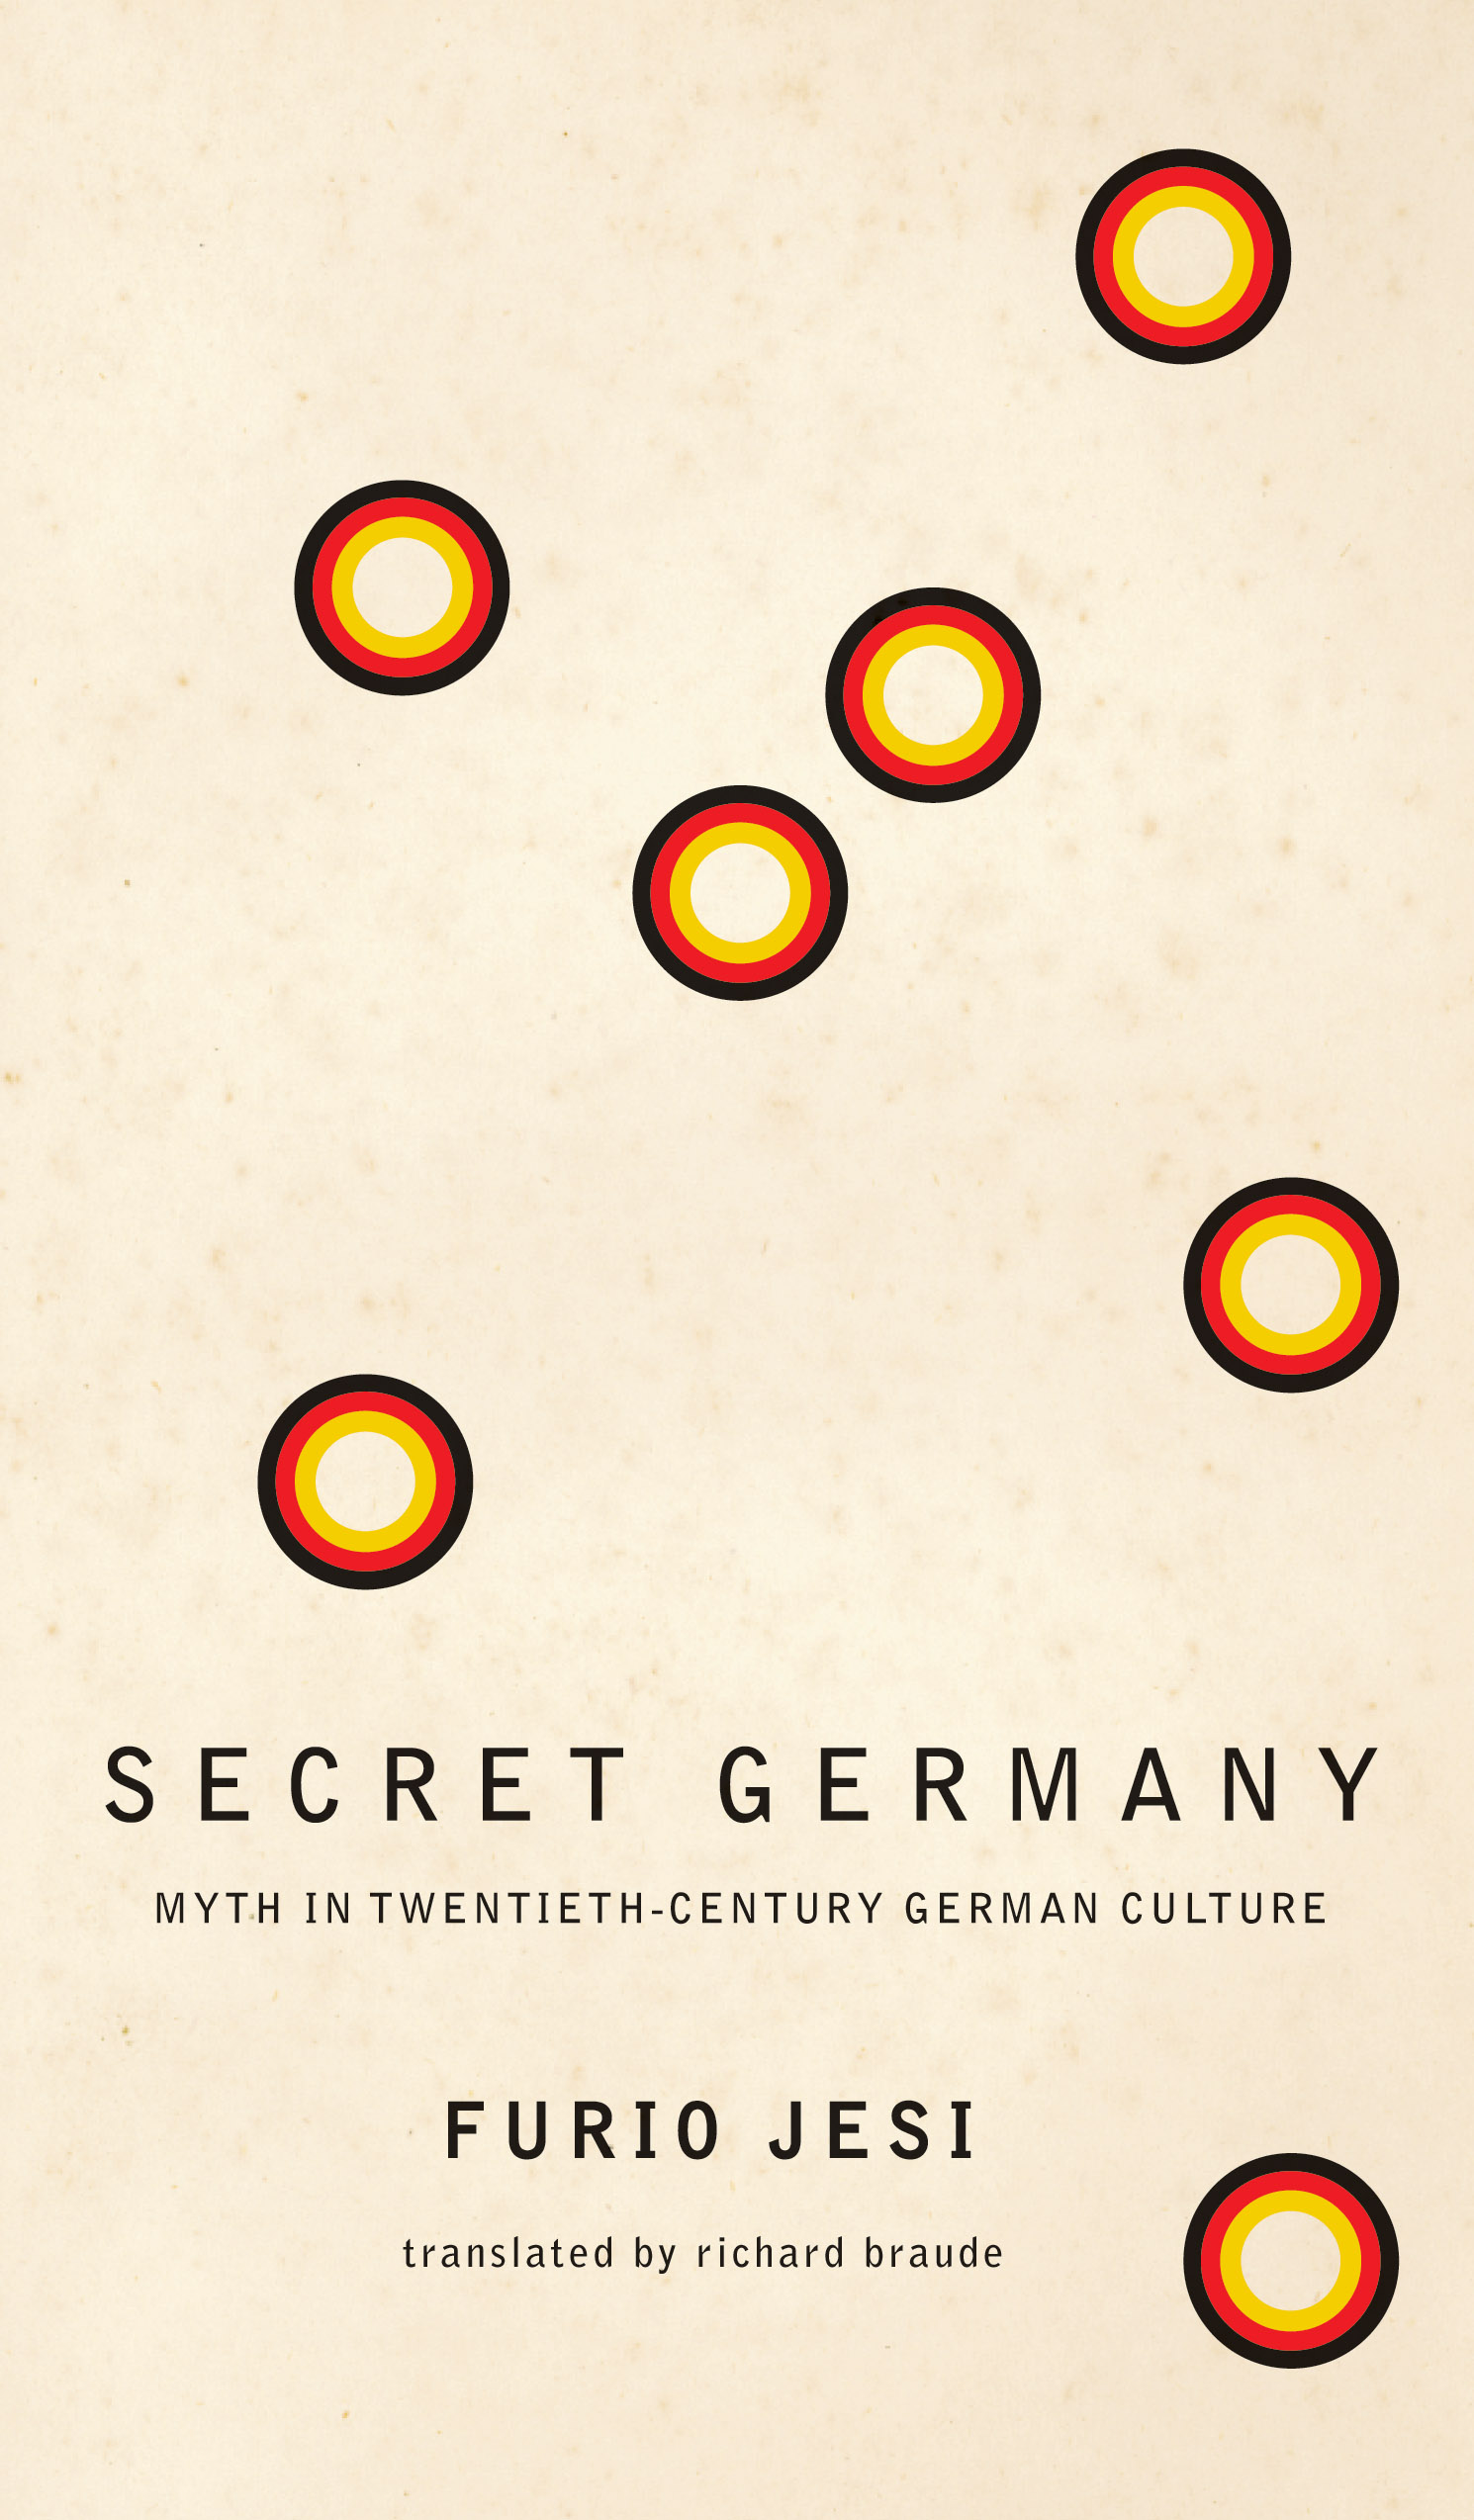 Secret Germany by Furio Jesi |  Seagull Books